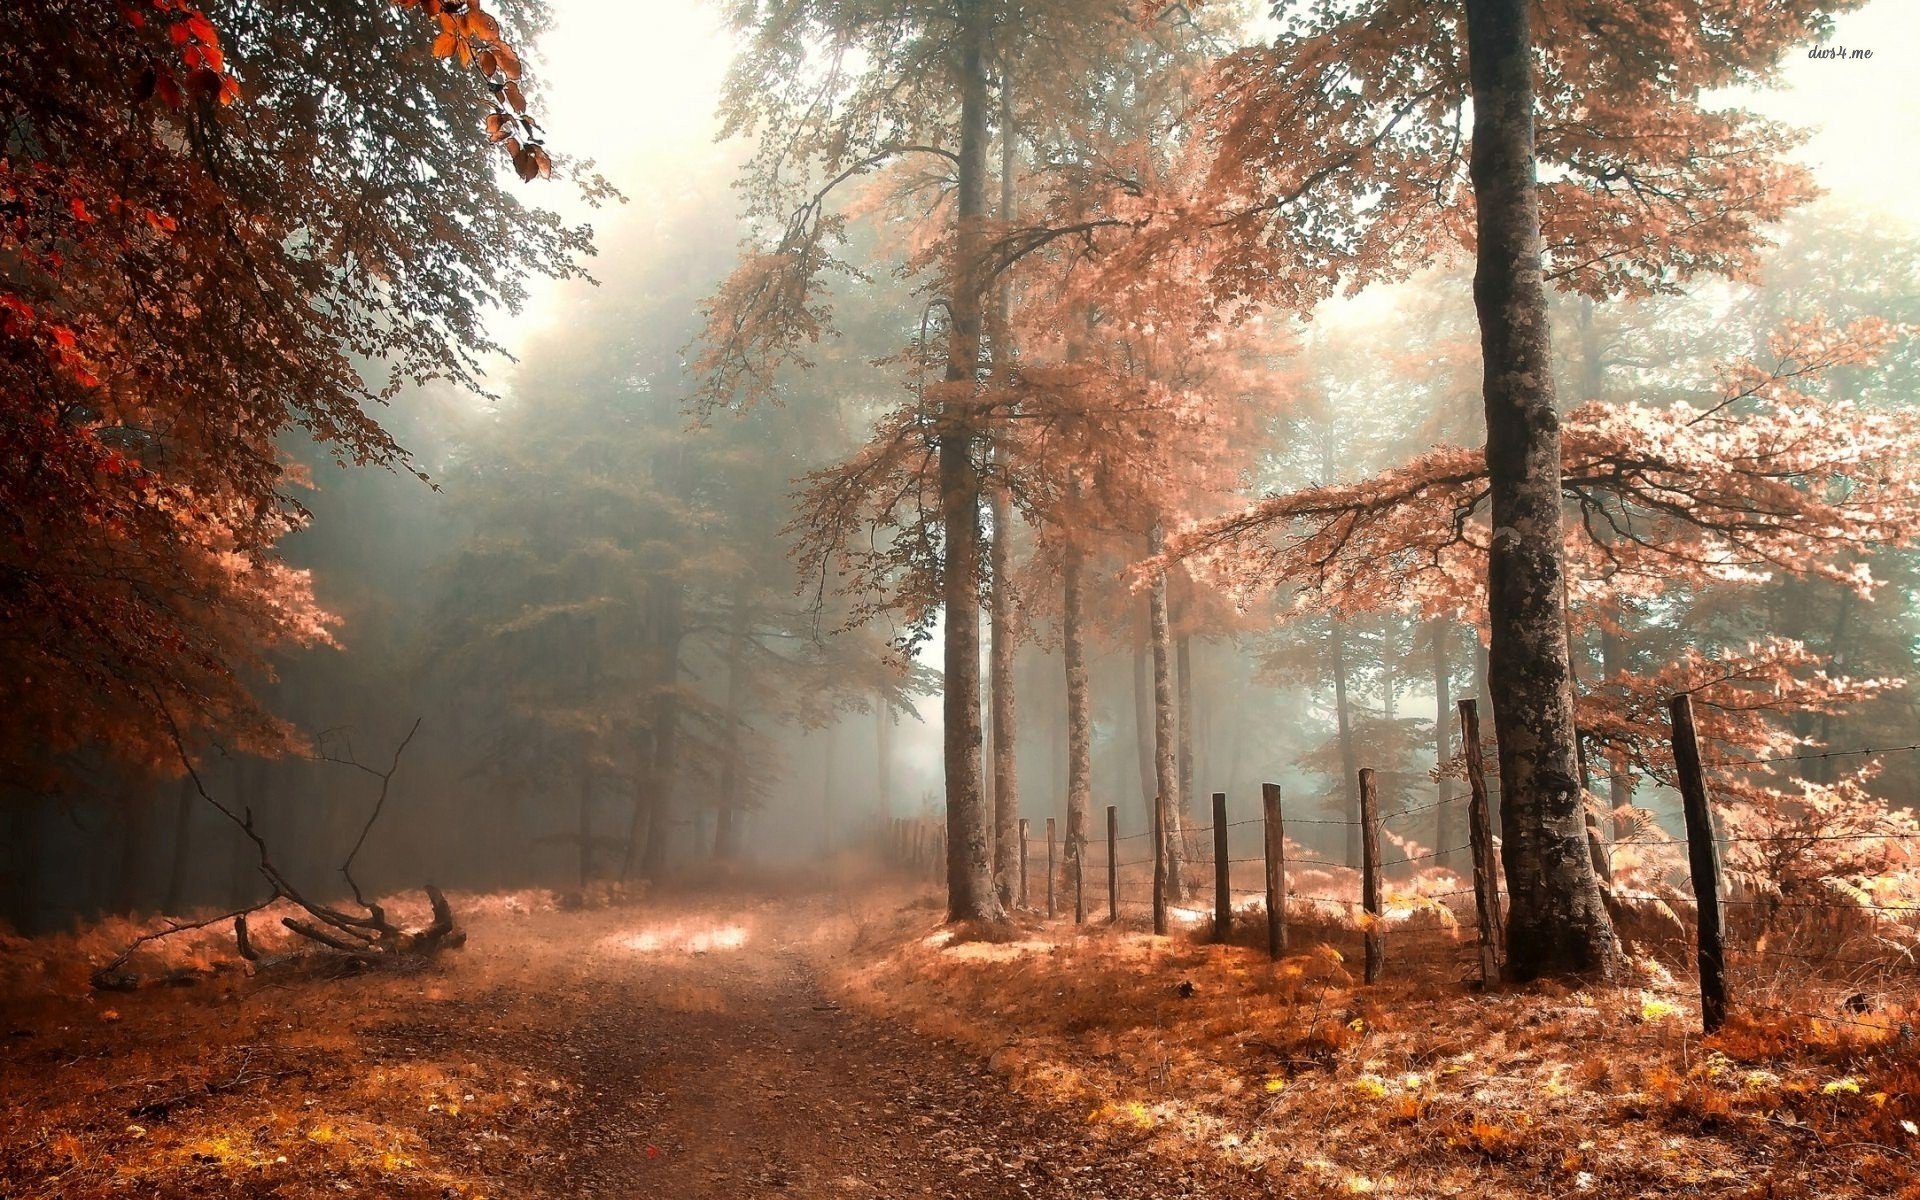 Foggy autumn forest nature wallpaper.